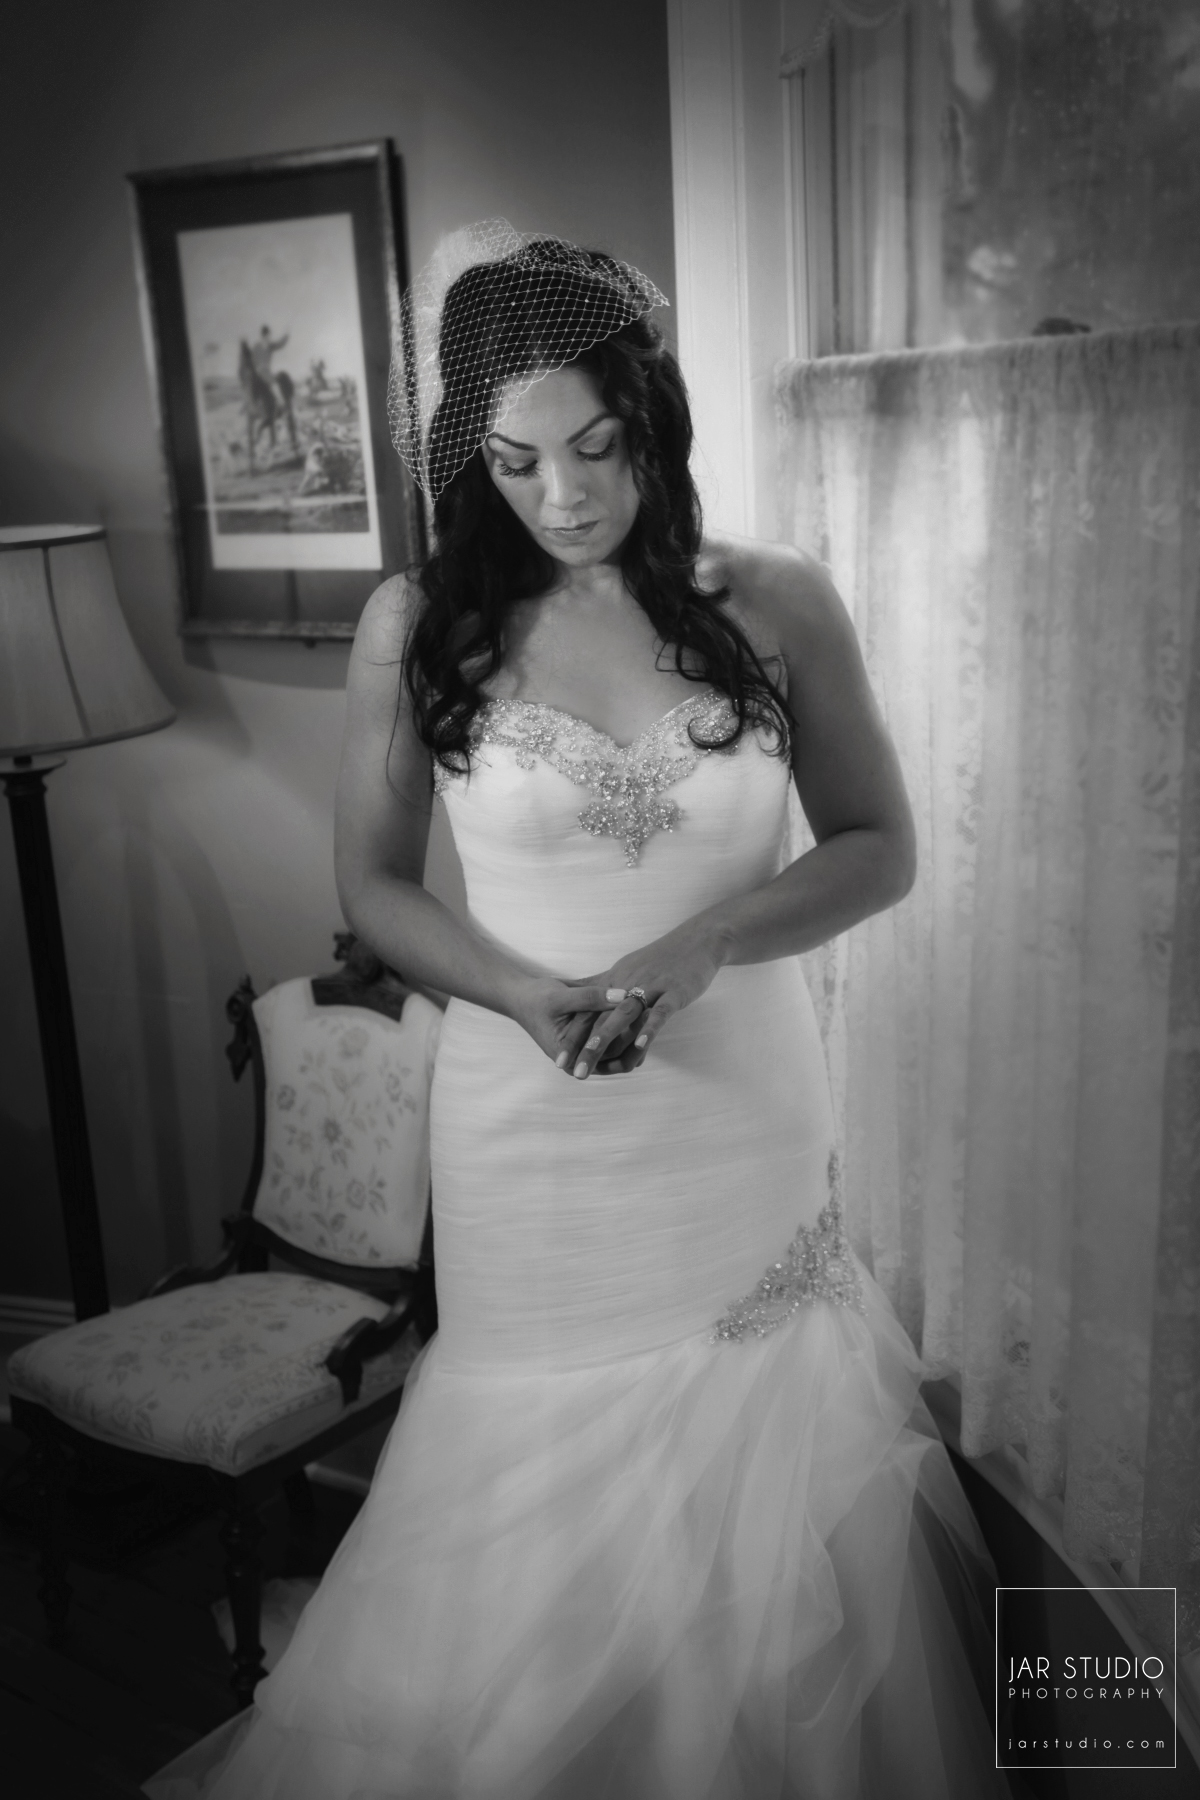 12-beautiful-wedding-dress-dr-phillips-house-jarstudio-photography.JPG